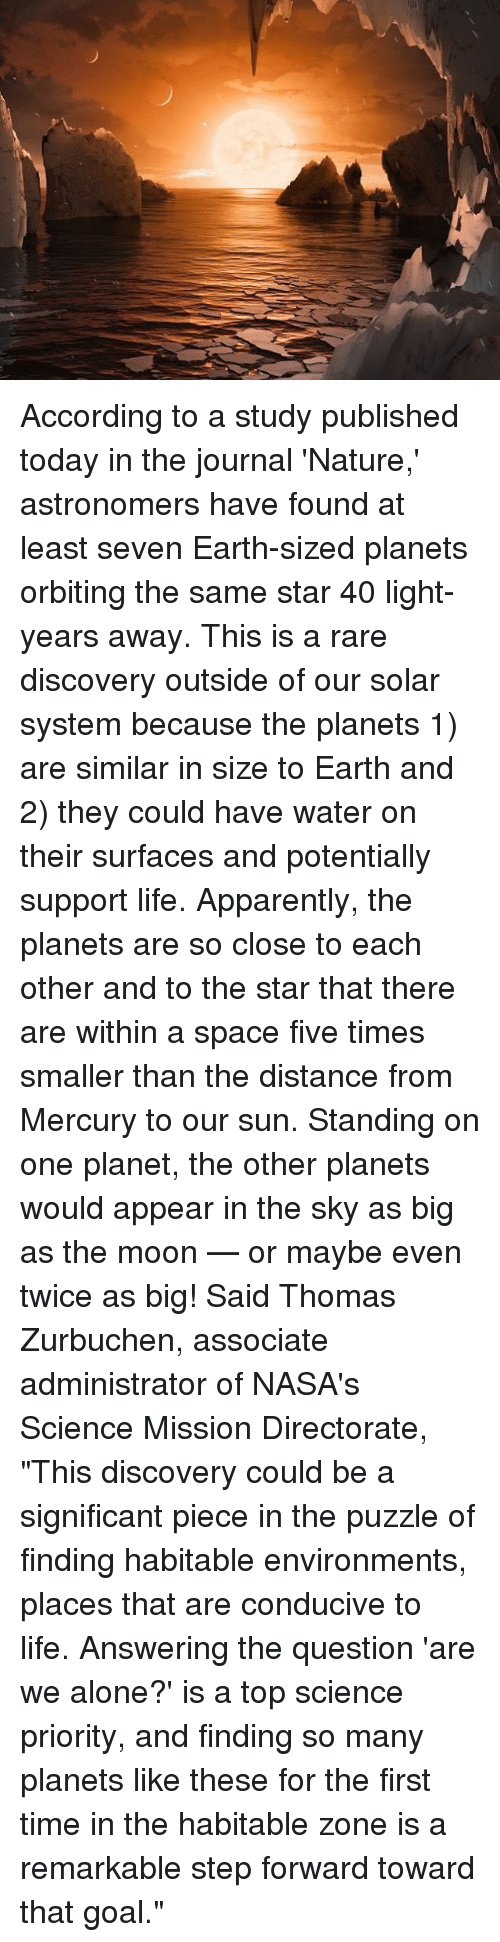 """accordance: According to a study published today in the journal 'Nature,' astronomers have found at least seven Earth-sized planets orbiting the same star 40 light-years away. This is a rare discovery outside of our solar system because the planets 1) are similar in size to Earth and 2) they could have water on their surfaces and potentially support life. Apparently, the planets are so close to each other and to the star that there are within a space five times smaller than the distance from Mercury to our sun. Standing on one planet, the other planets would appear in the sky as big as the moon — or maybe even twice as big! Said Thomas Zurbuchen, associate administrator of NASA's Science Mission Directorate, """"This discovery could be a significant piece in the puzzle of finding habitable environments, places that are conducive to life. Answering the question 'are we alone?' is a top science priority, and finding so many planets like these for the first time in the habitable zone is a remarkable step forward toward that goal."""""""